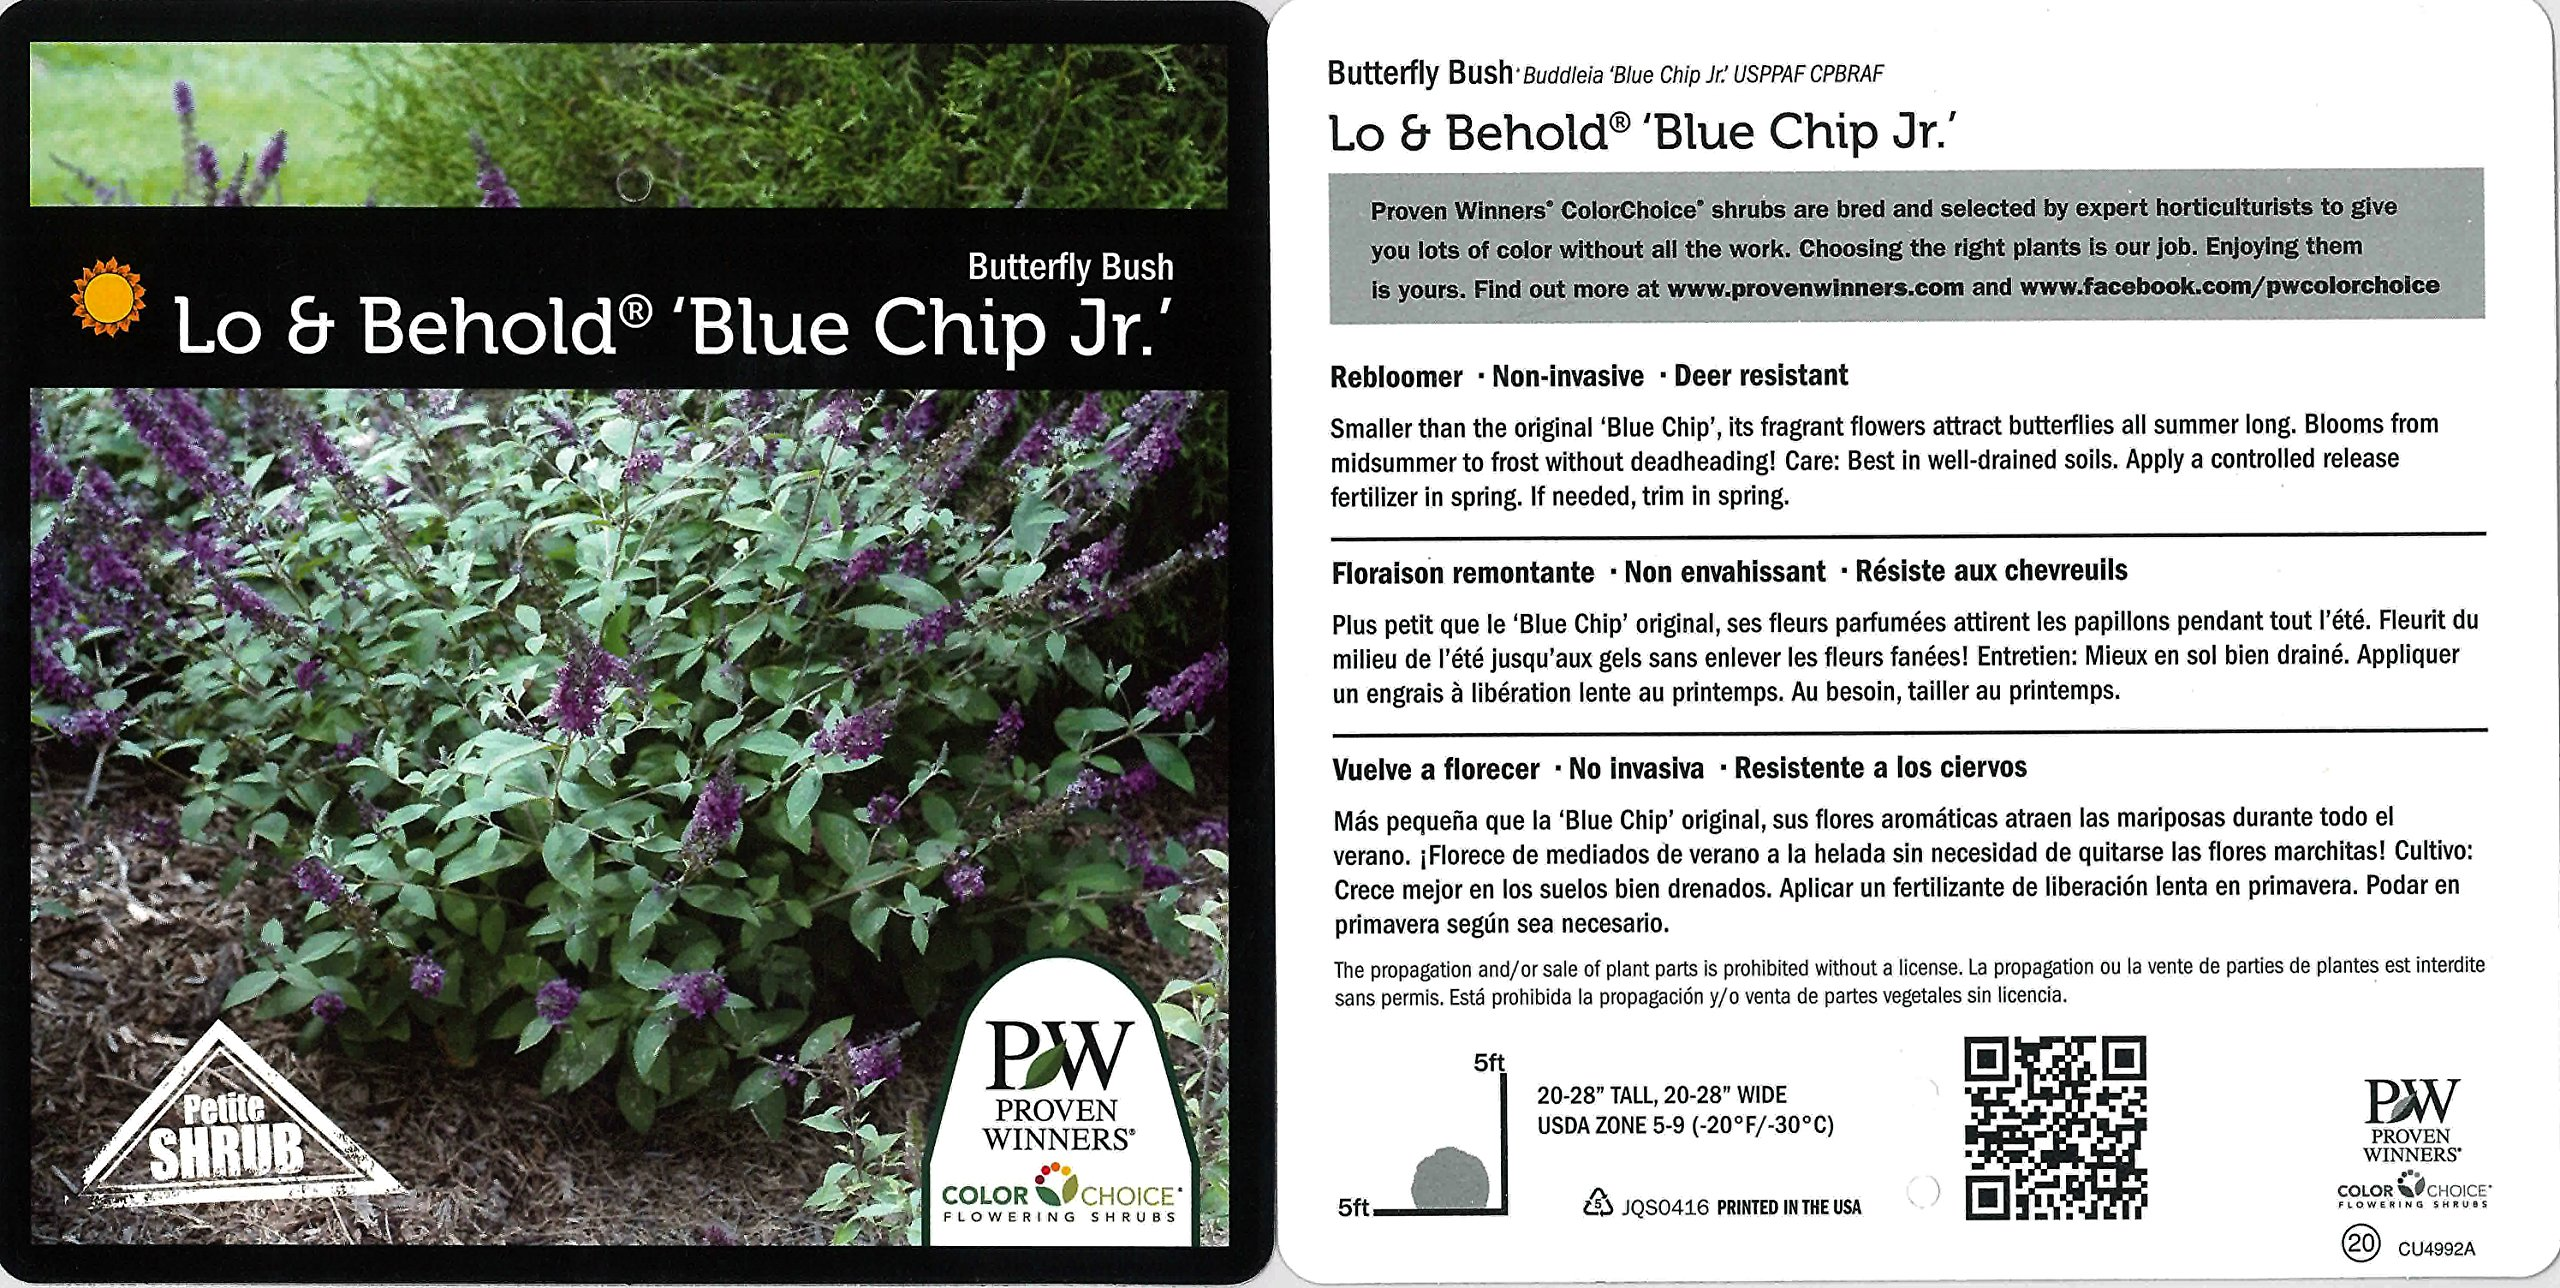 1 Gal. Lo & Behold 'Blue Chip Jr.' Butterfly Bush (Buddleia) Live Shrub, Blue-Purple Flowers by Proven Winners (Image #3)